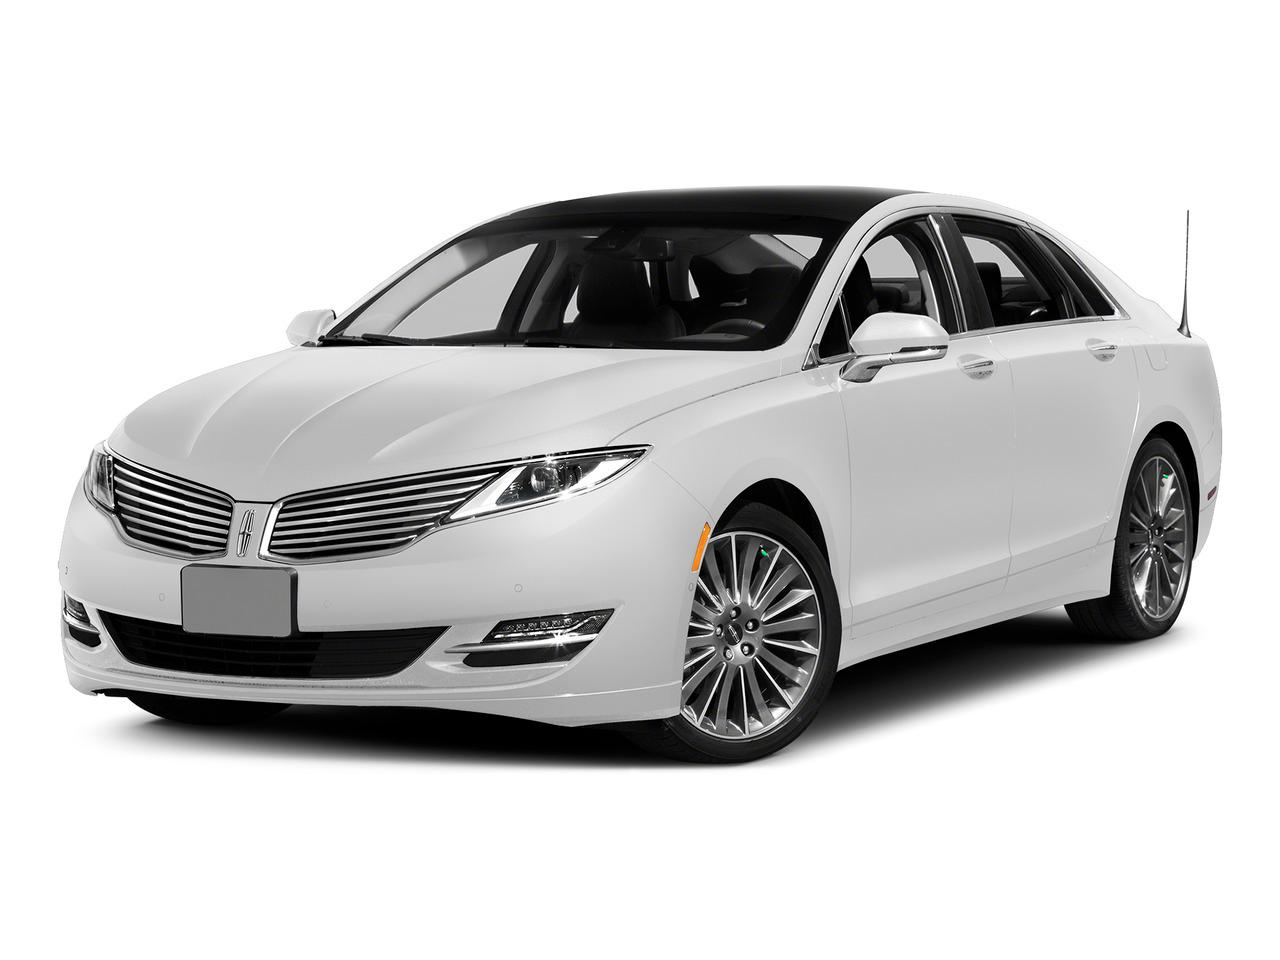 2015 LINCOLN MKZ Vehicle Photo in Beaufort, SC 29906